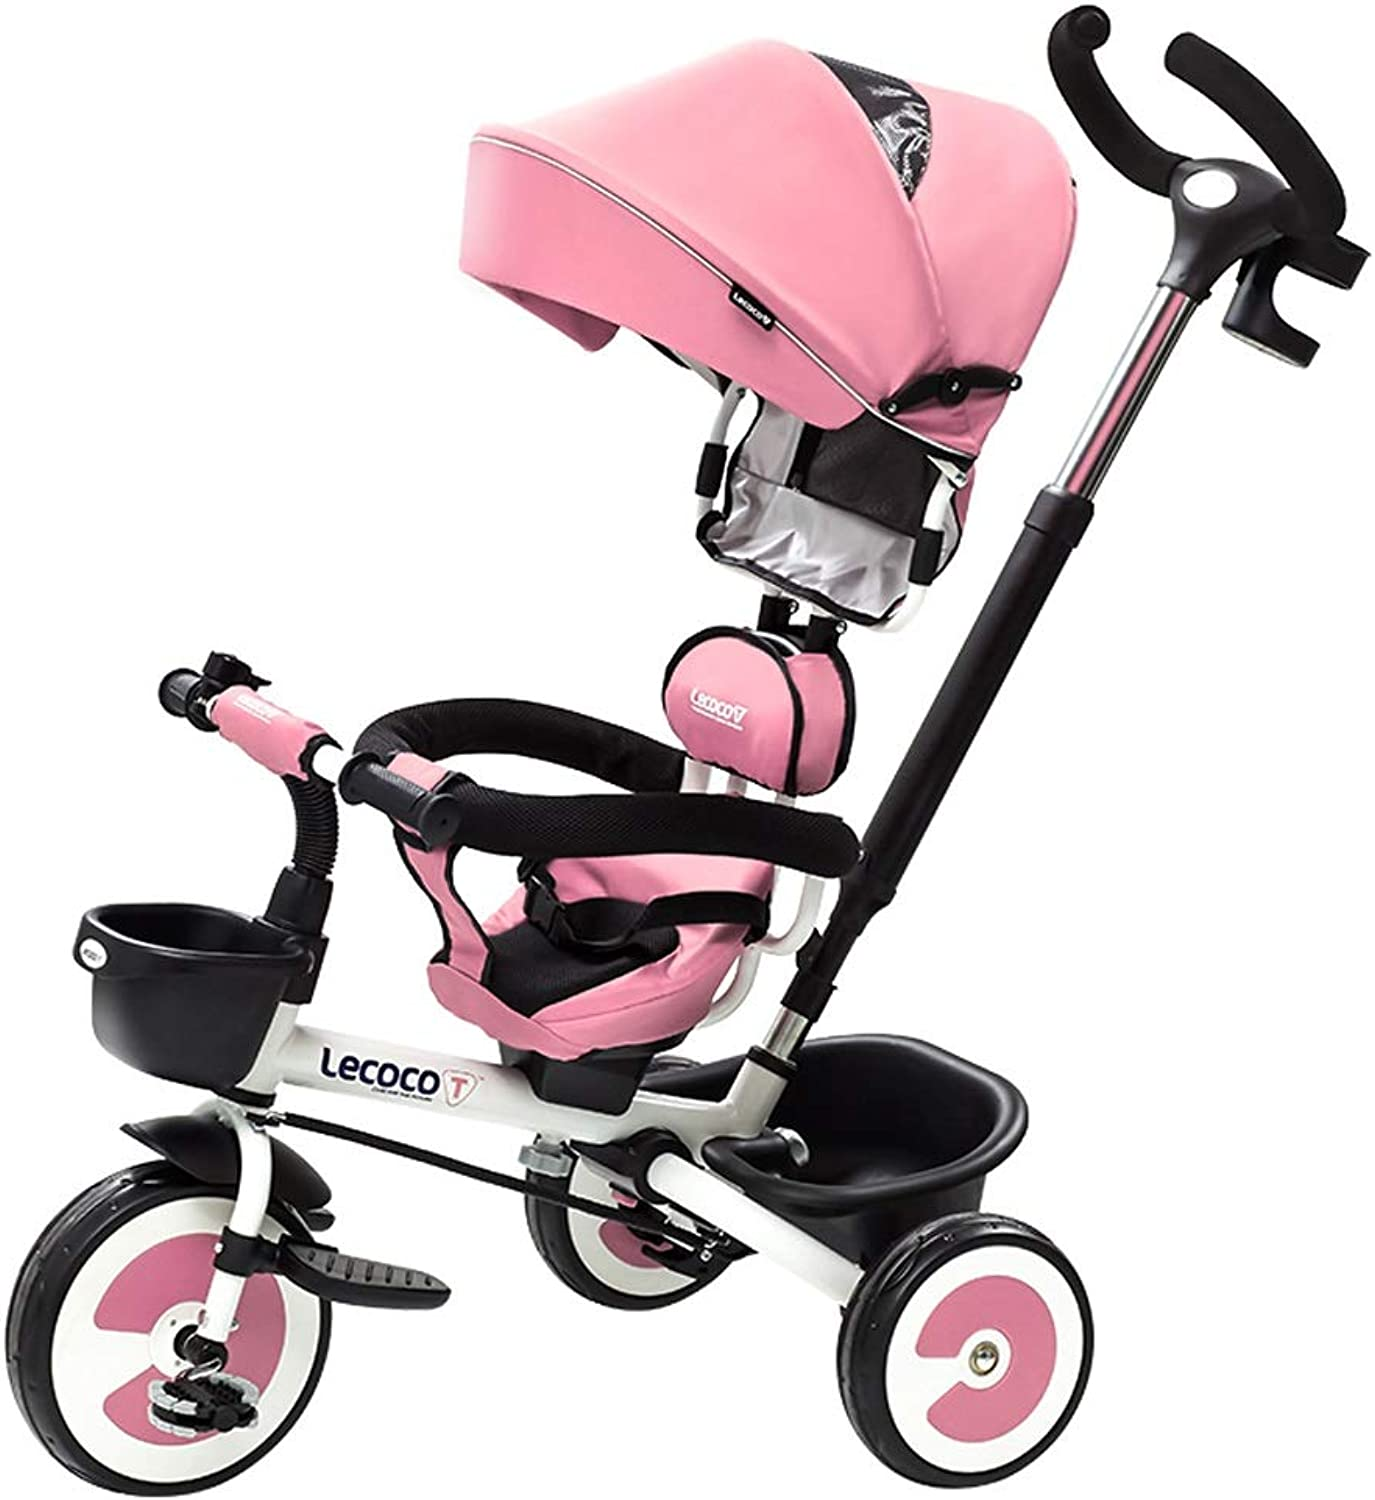 Y Volution Y Glider XL Scooter - Pink